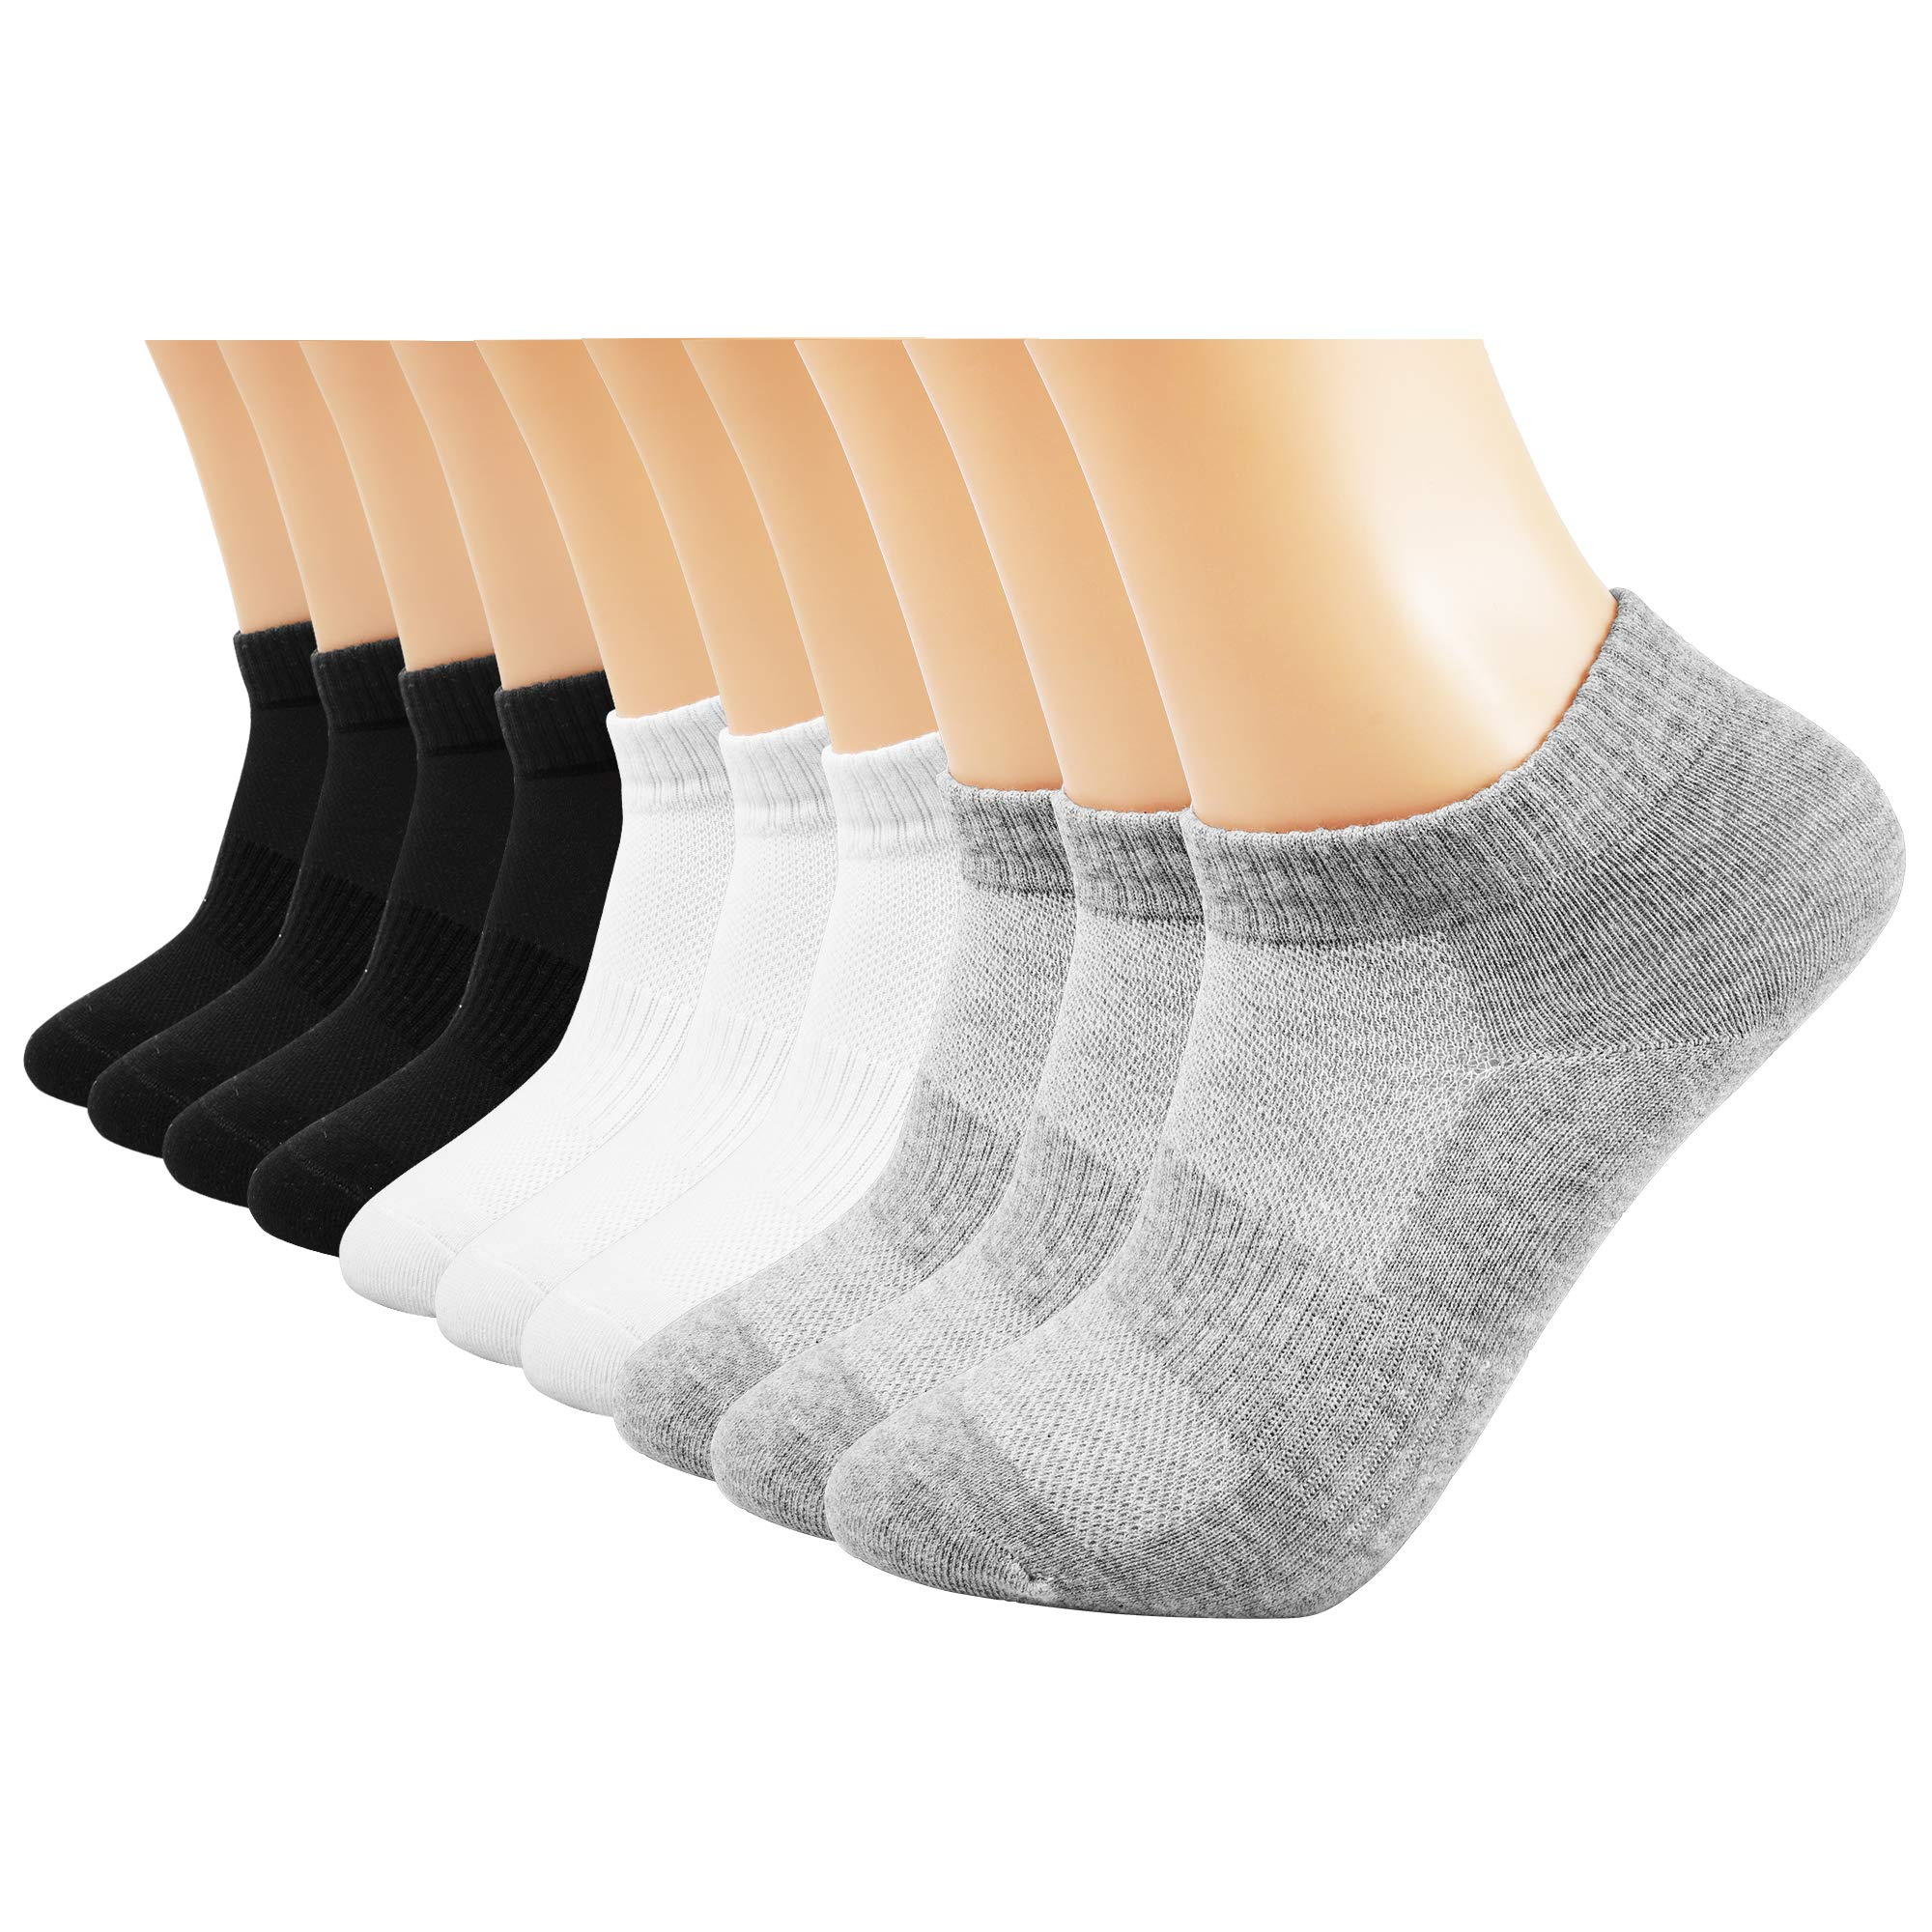 Avantmen Men's ankle socks 10 pack